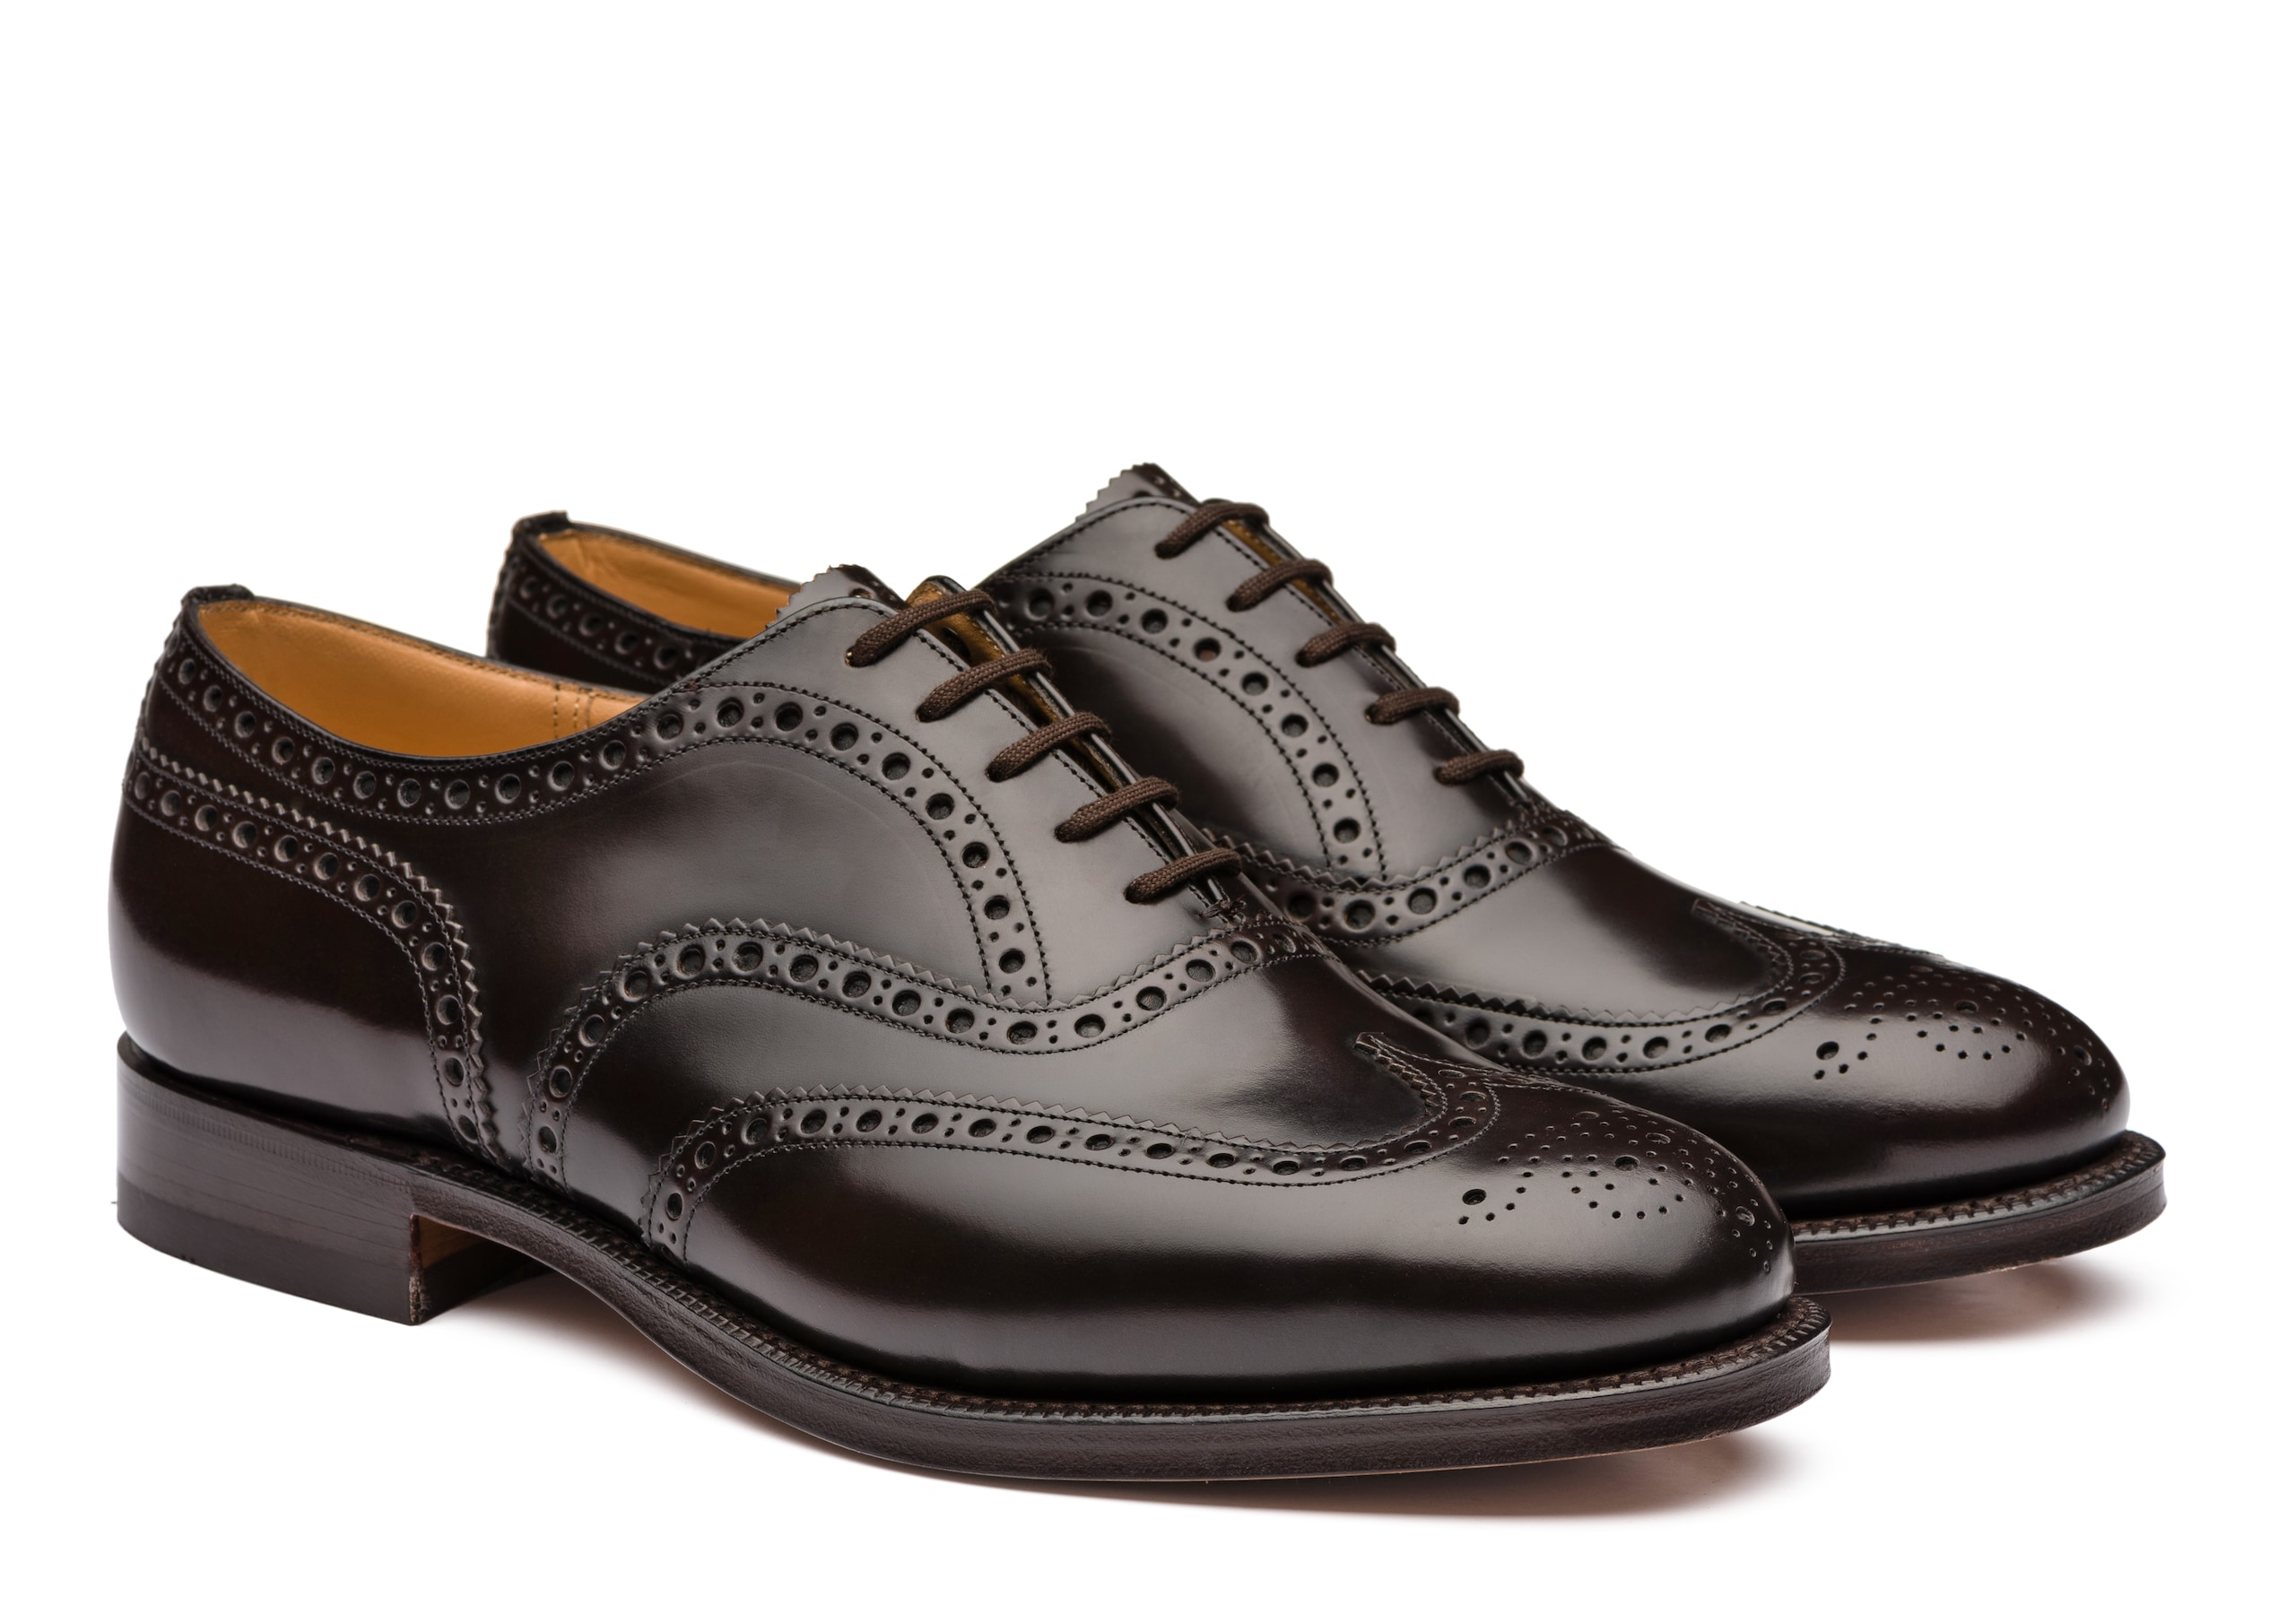 Burwood Church's Richelieu Oxford à Liant Poli Marron